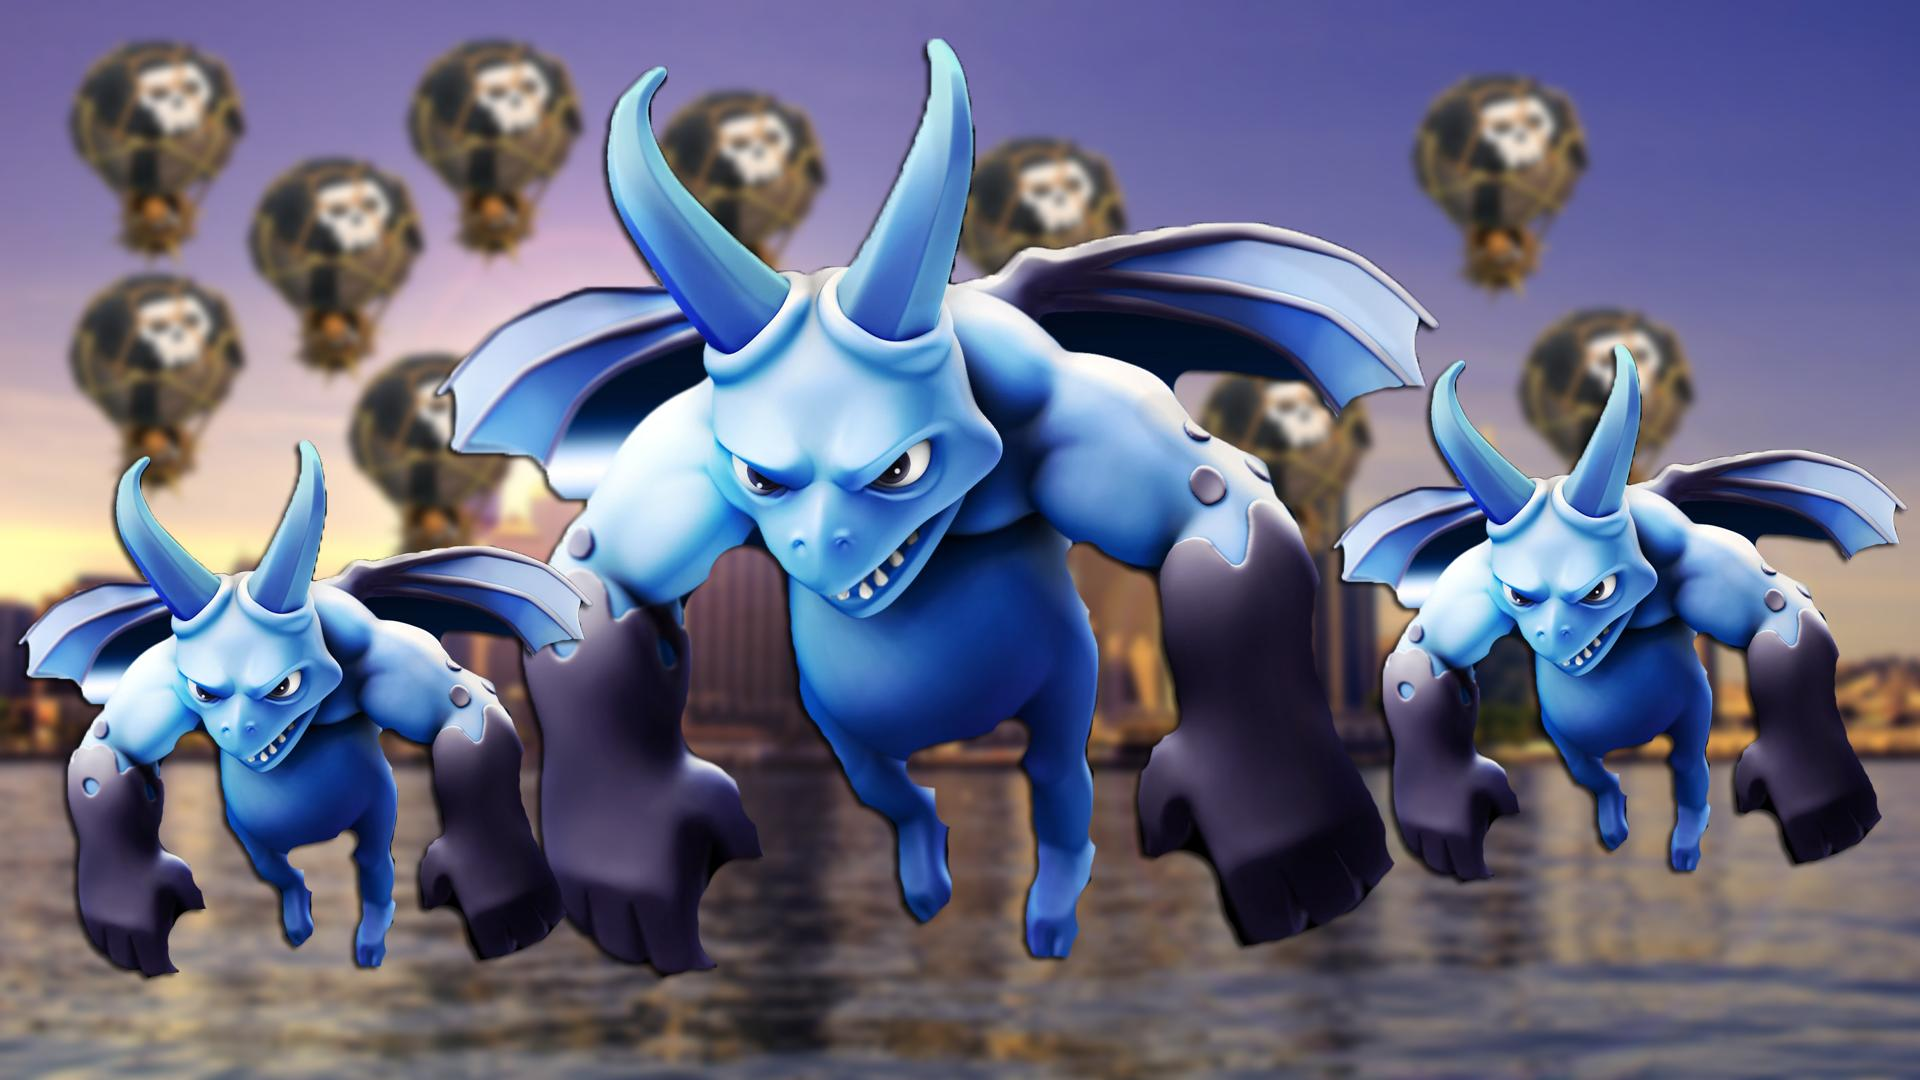 Hd Coc Wallpaper - Clash Of Clans Troops Hd , HD Wallpaper & Backgrounds